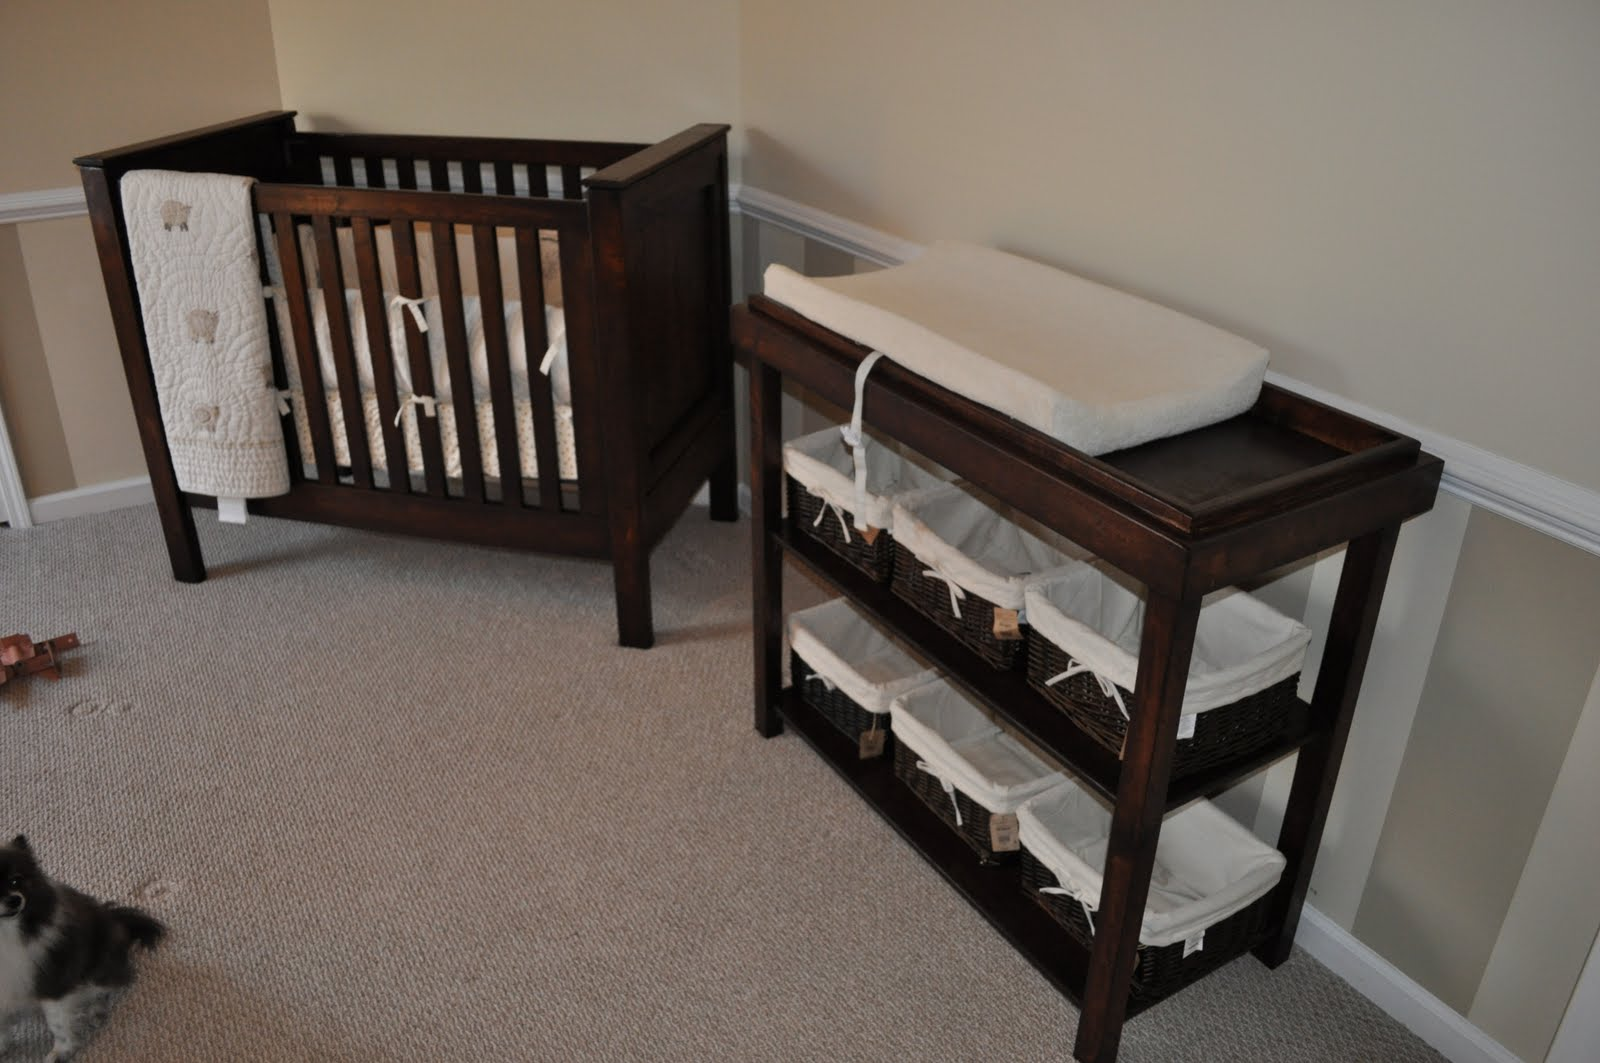 The Weston Deep Rustic Baby Crib 2200